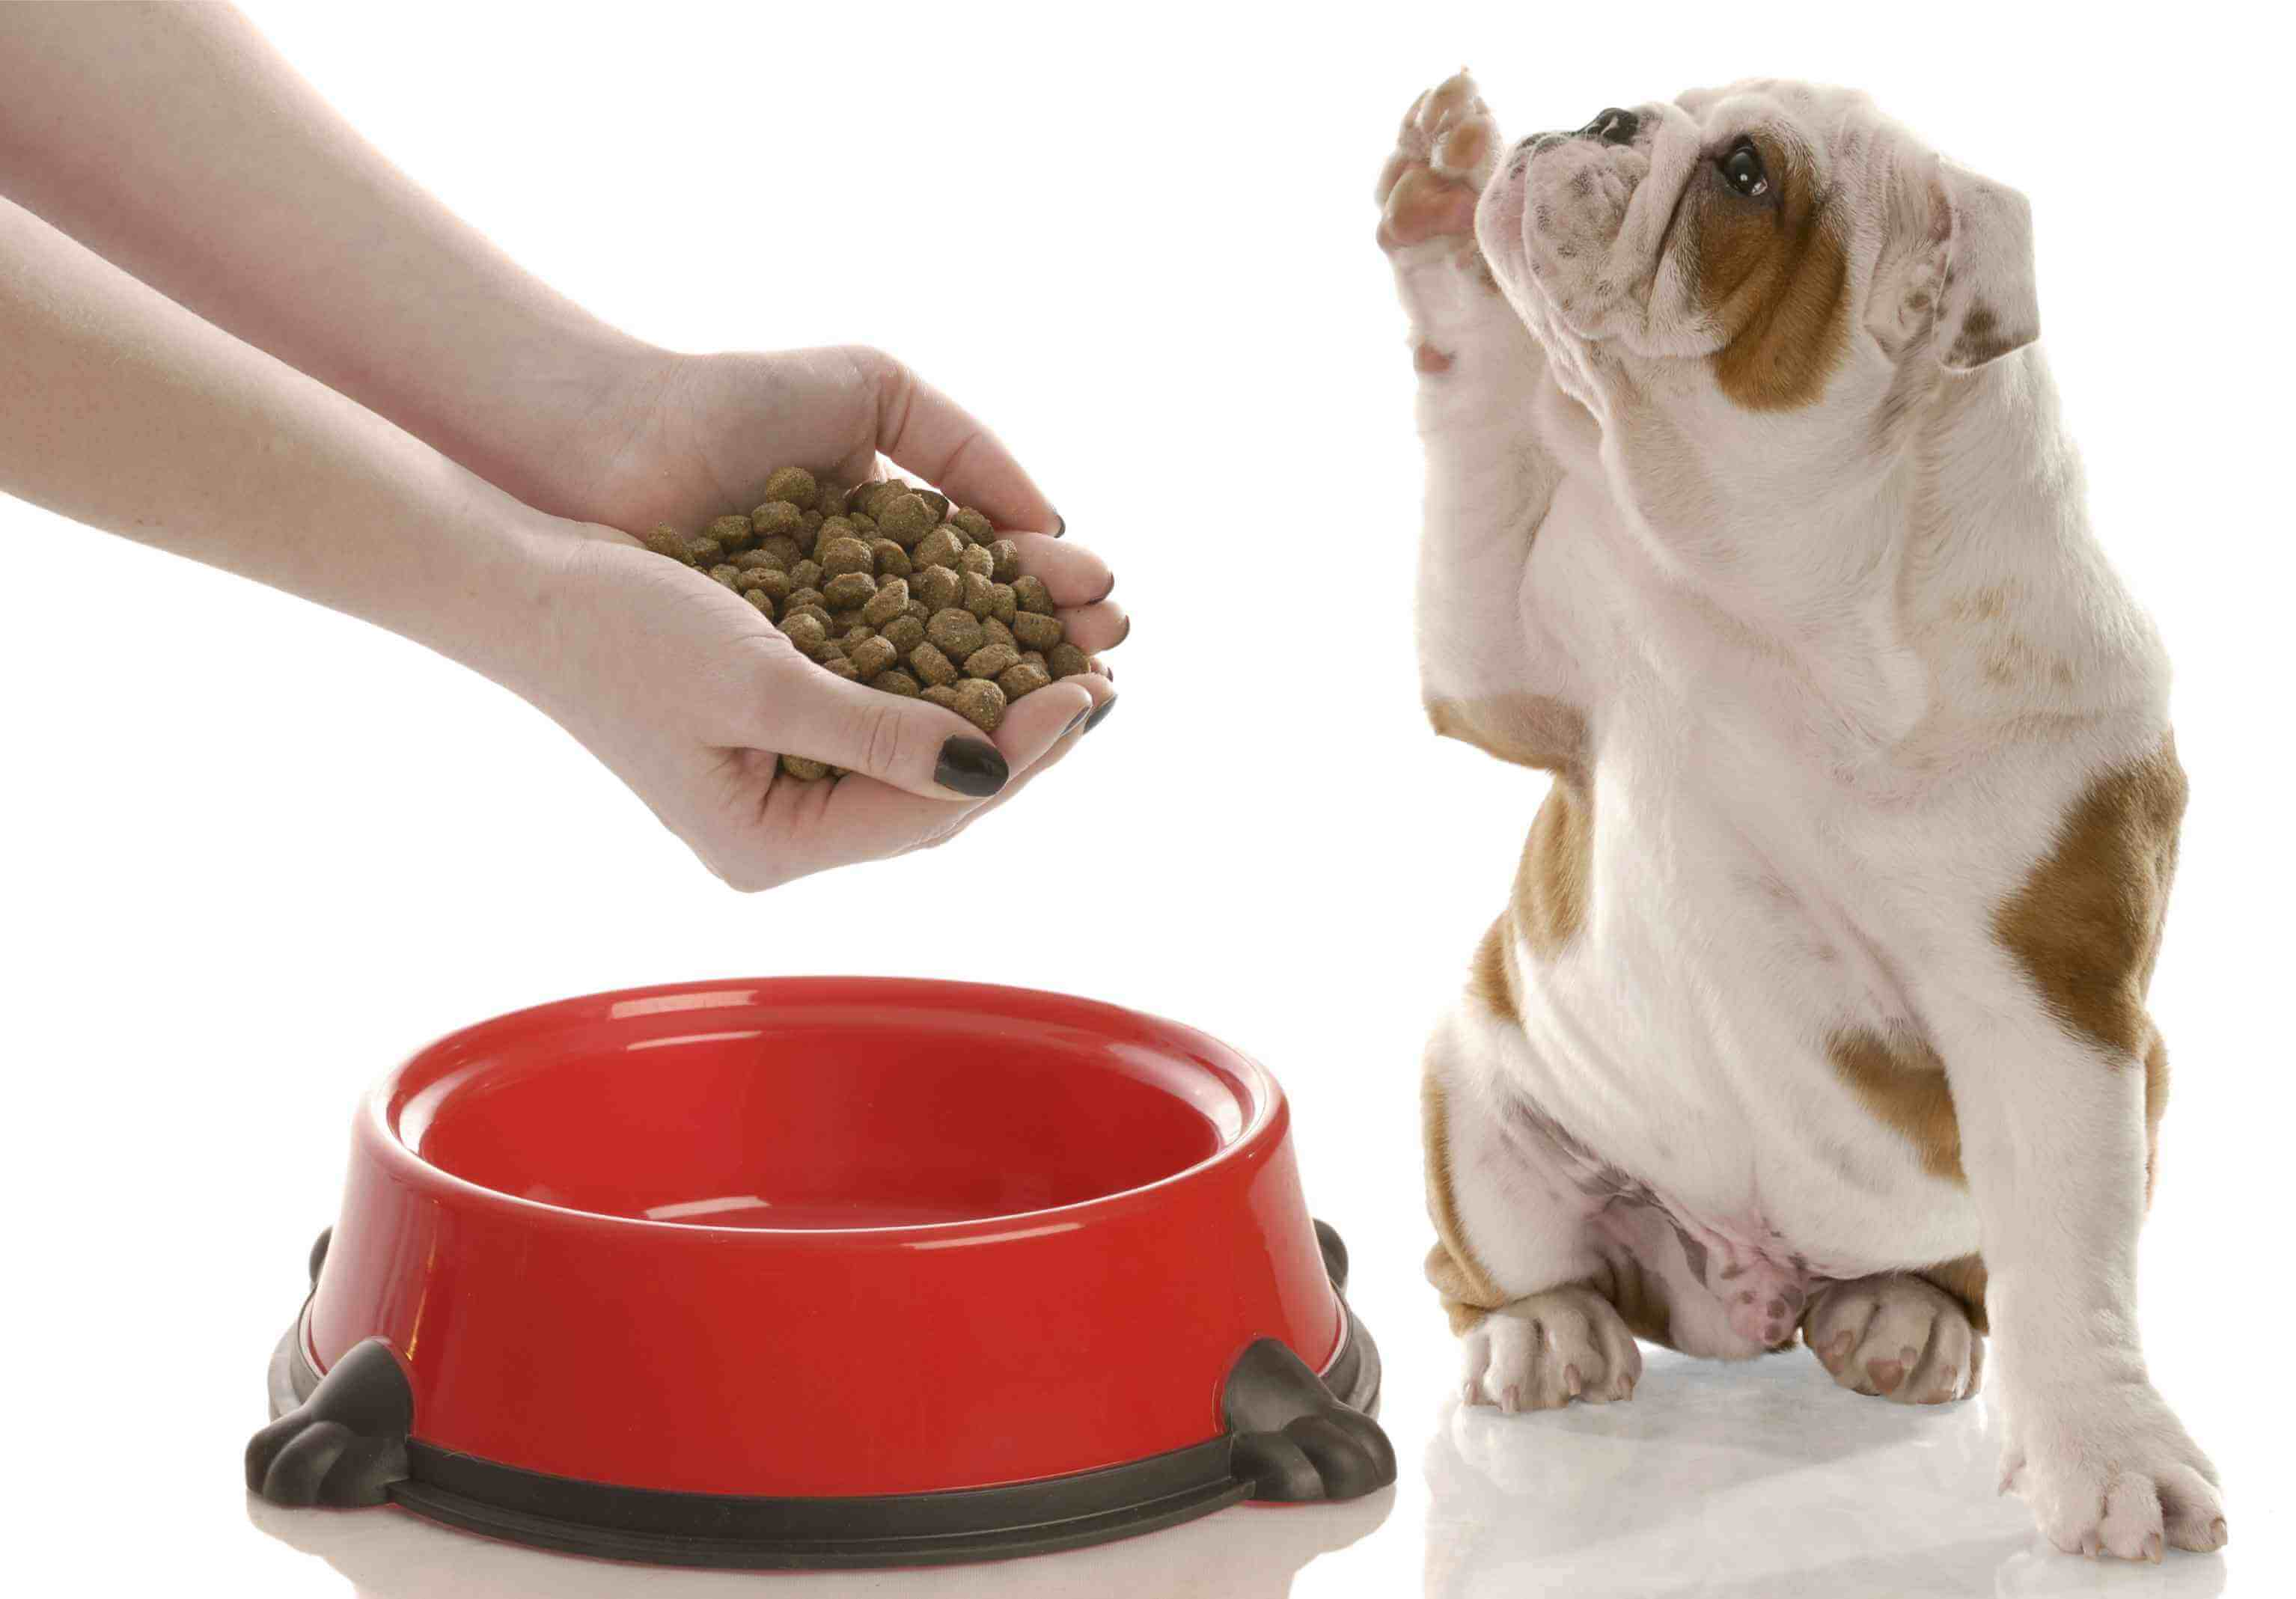 english bulldog puppy holding paw up begging for owner to feed him